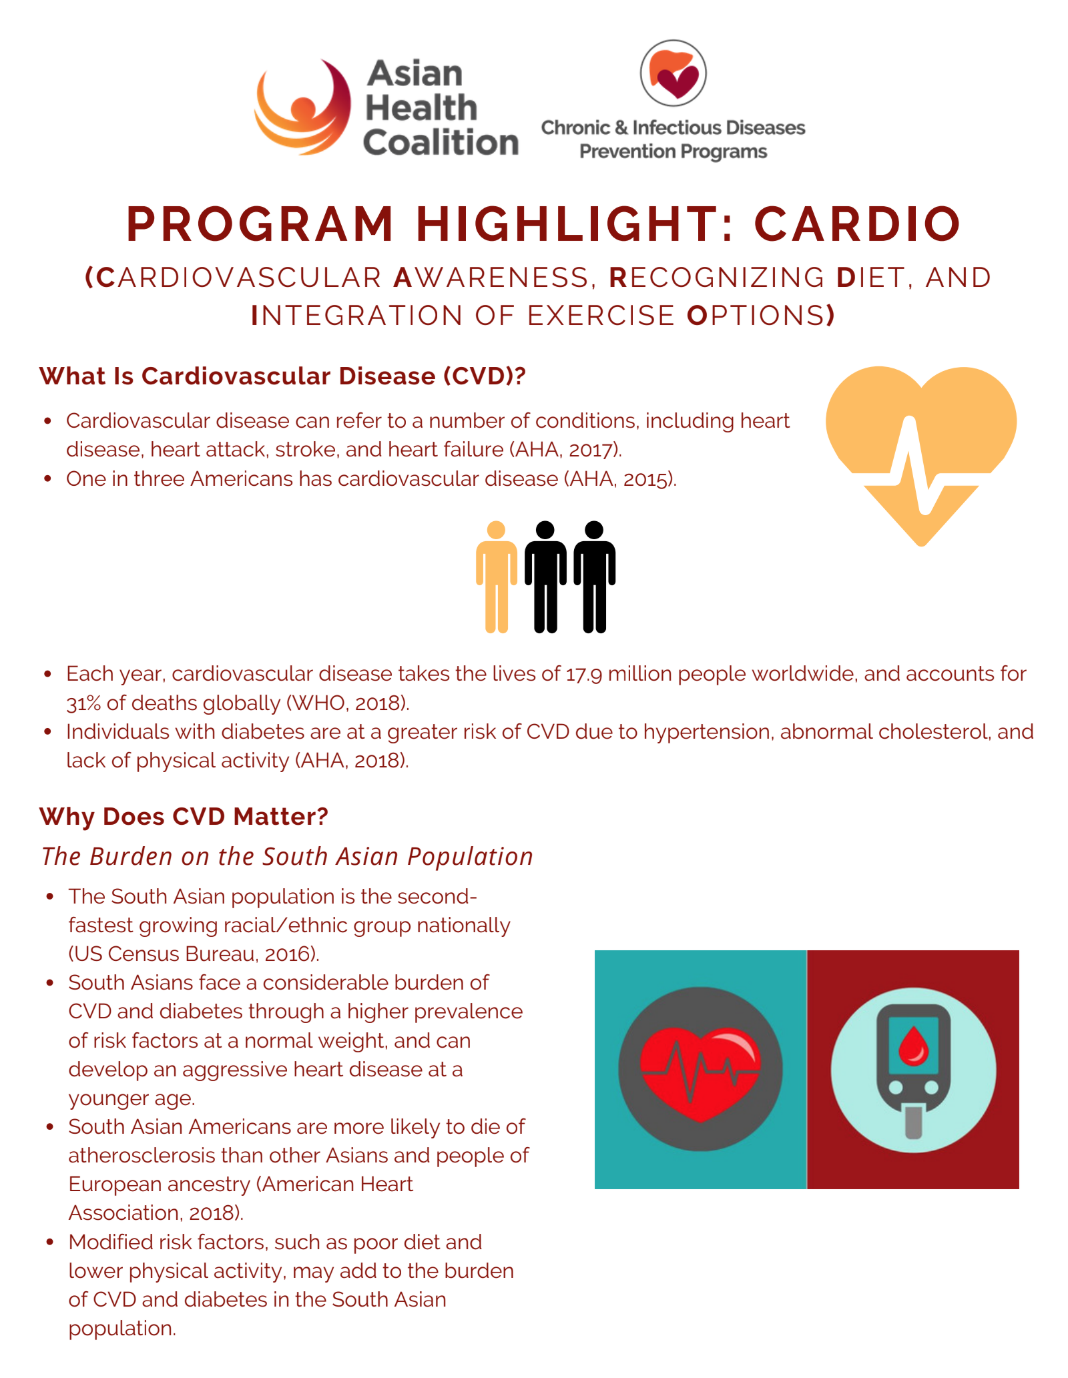 Please click on image to access complete program infographic.